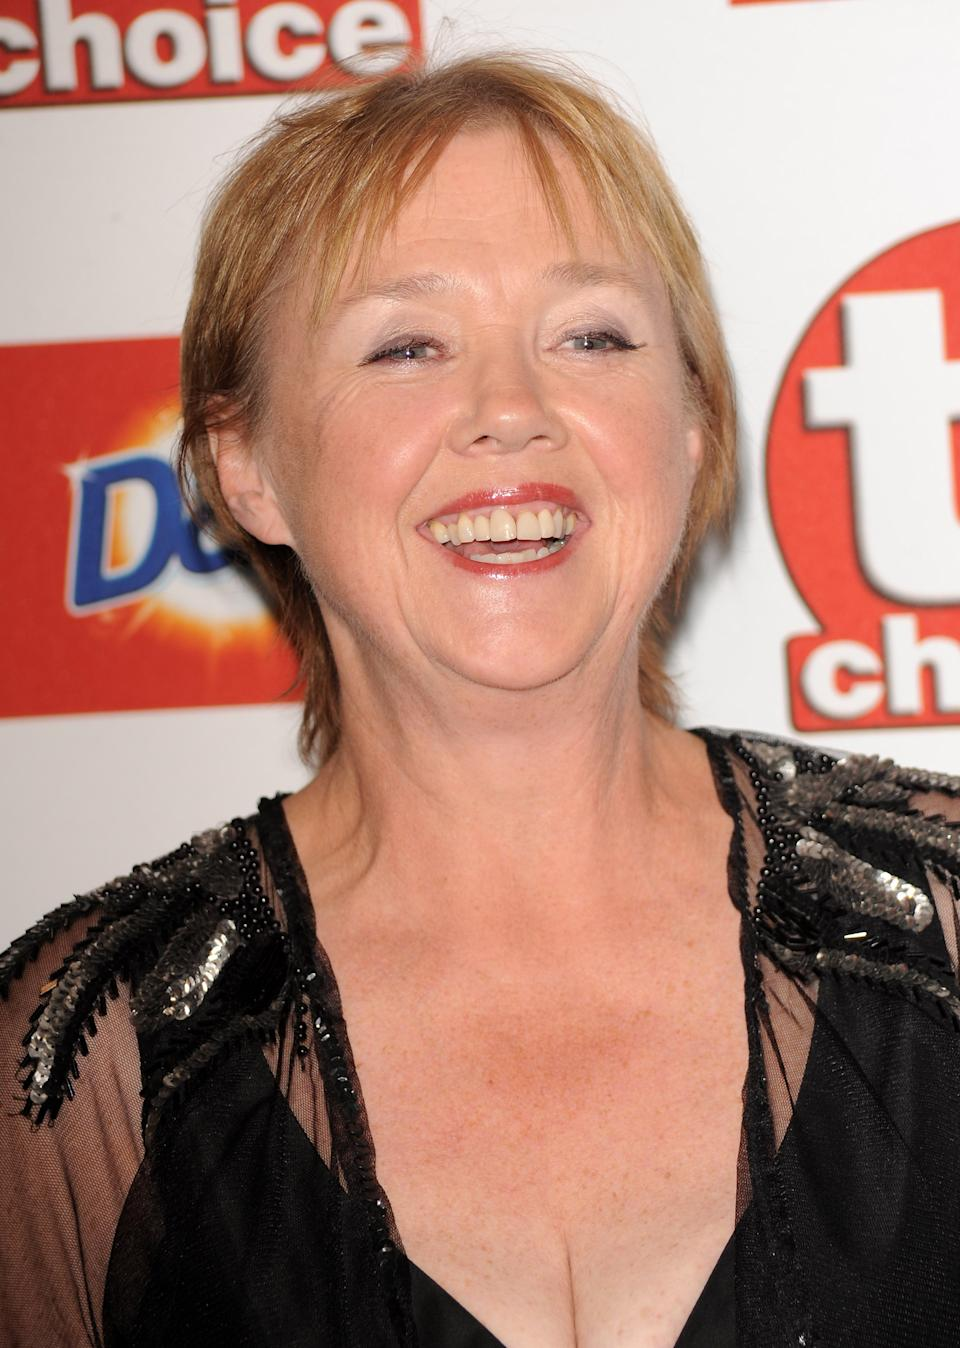 Pauline Quirke is said to be focusing on her acting academies. (Photo by Stuart Wilson/Getty Images)